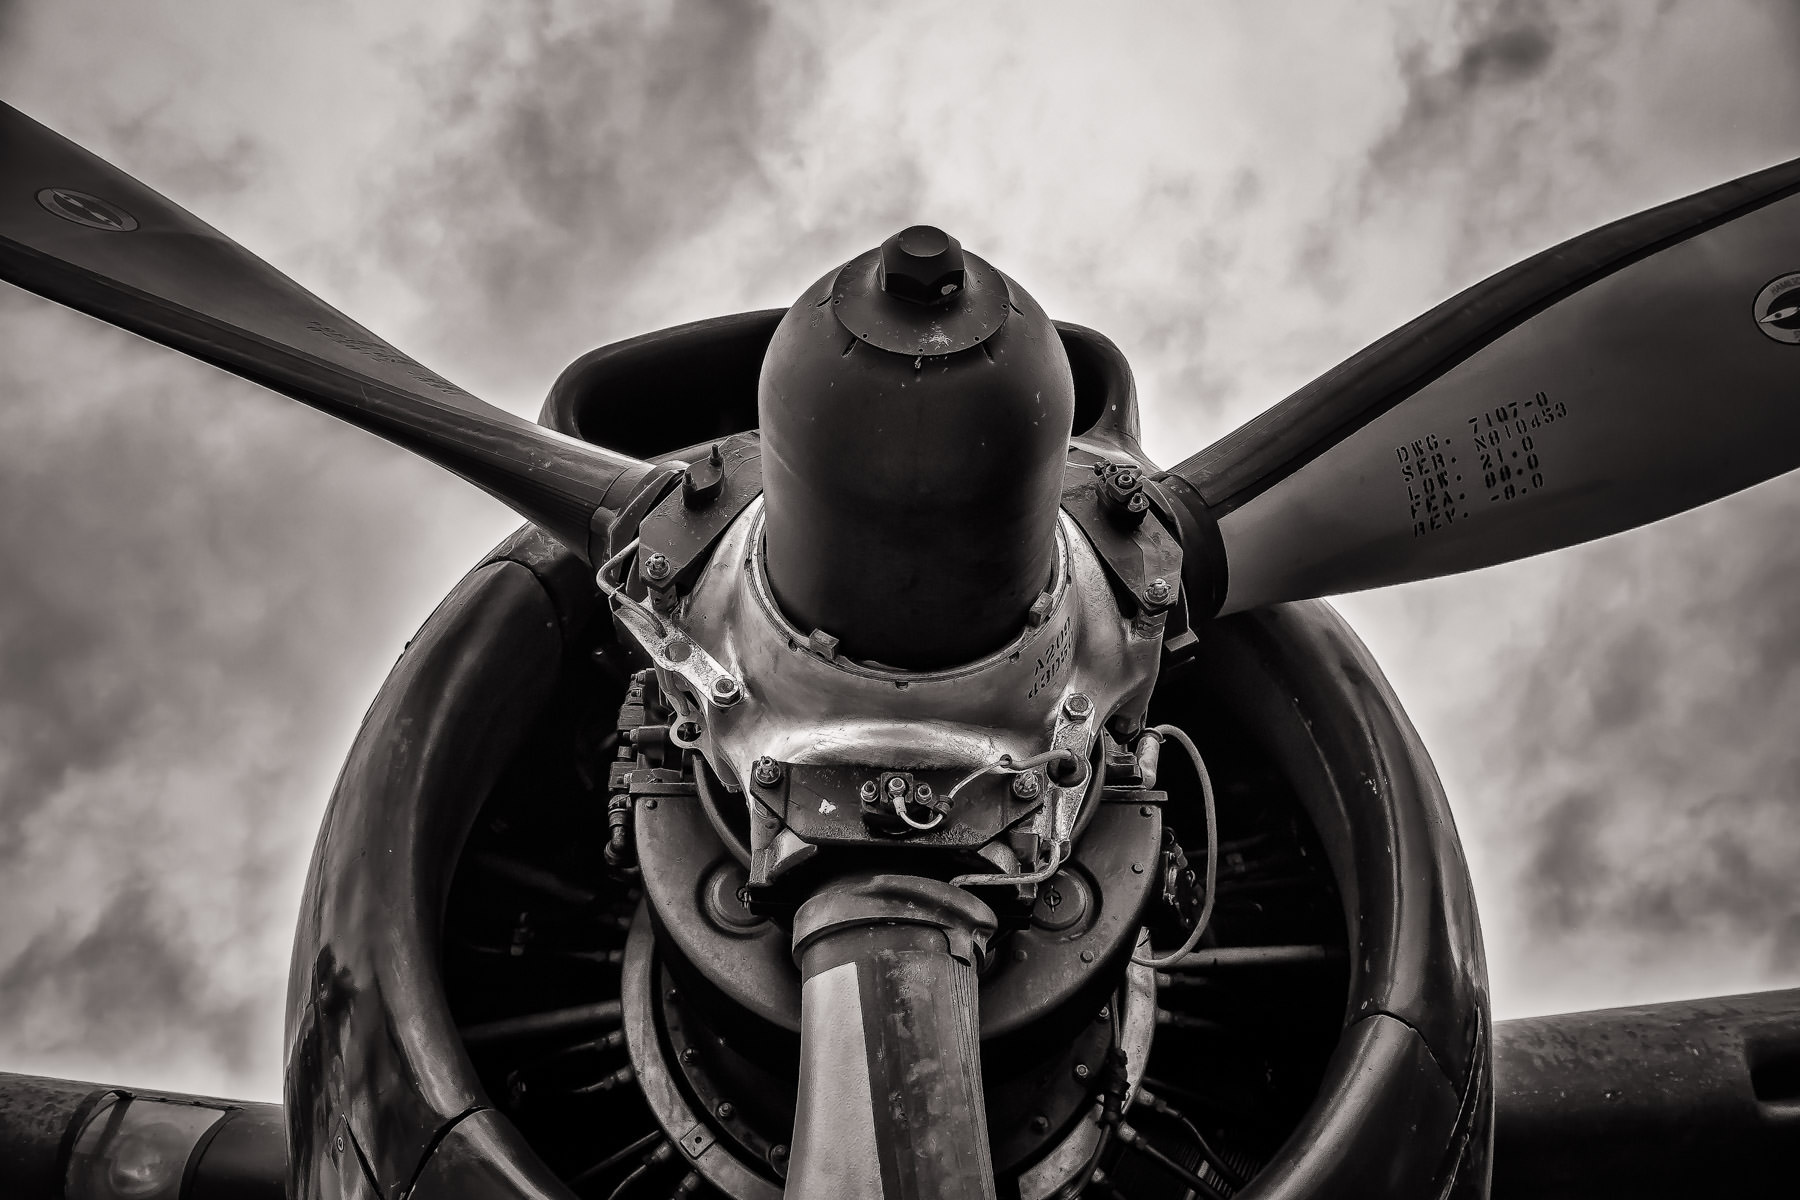 Detail of one of the two Pratt & Whitney R-2000 Twin Wasp 14-cylinder engines on a DHC-4 Caribou on display at Addison, Texas' Cavanaugh Flight Museum.